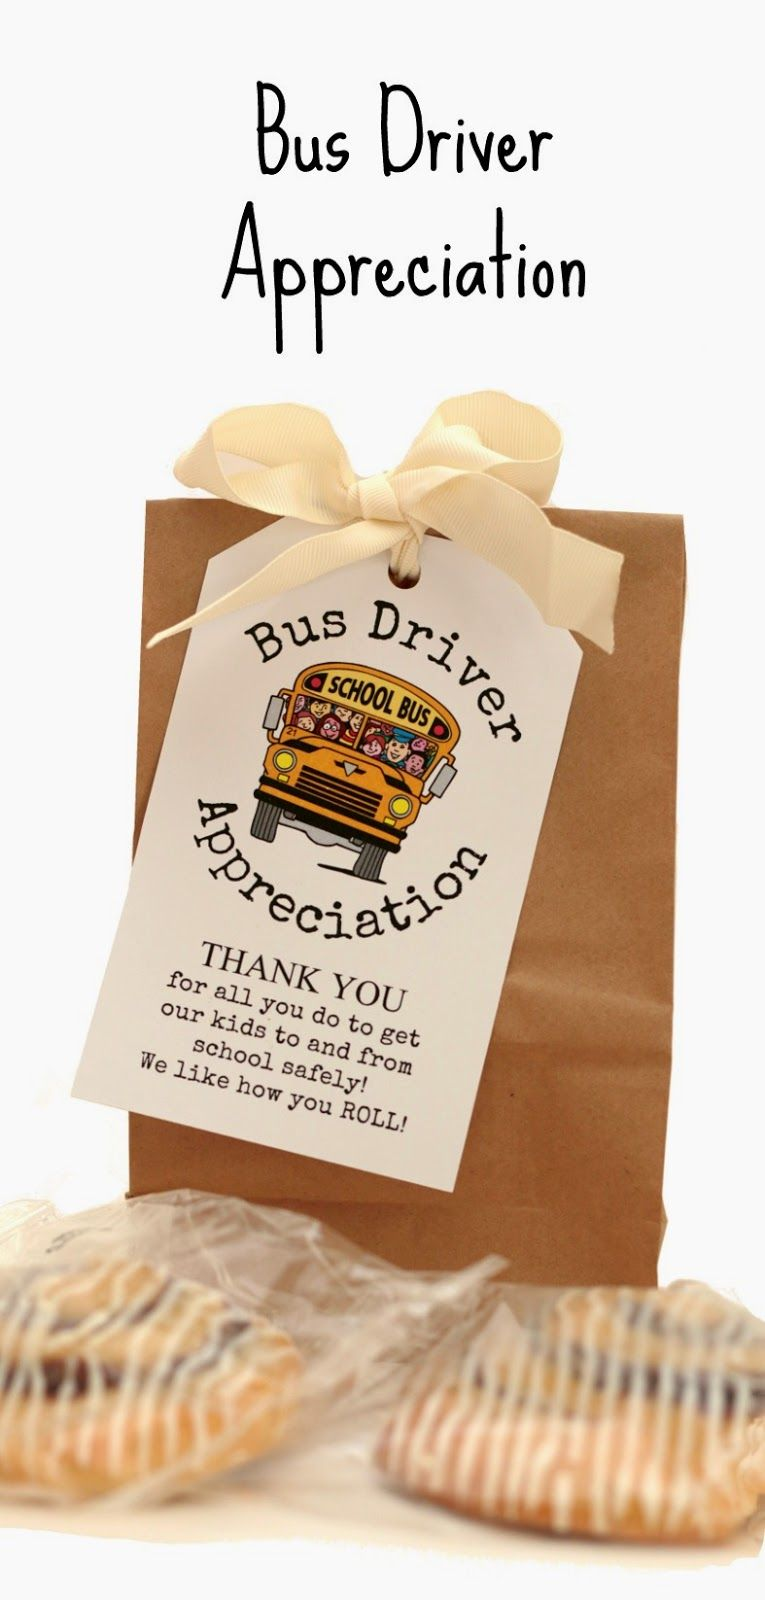 bus driver appreciation printable school bus our bus driver appreciation printable